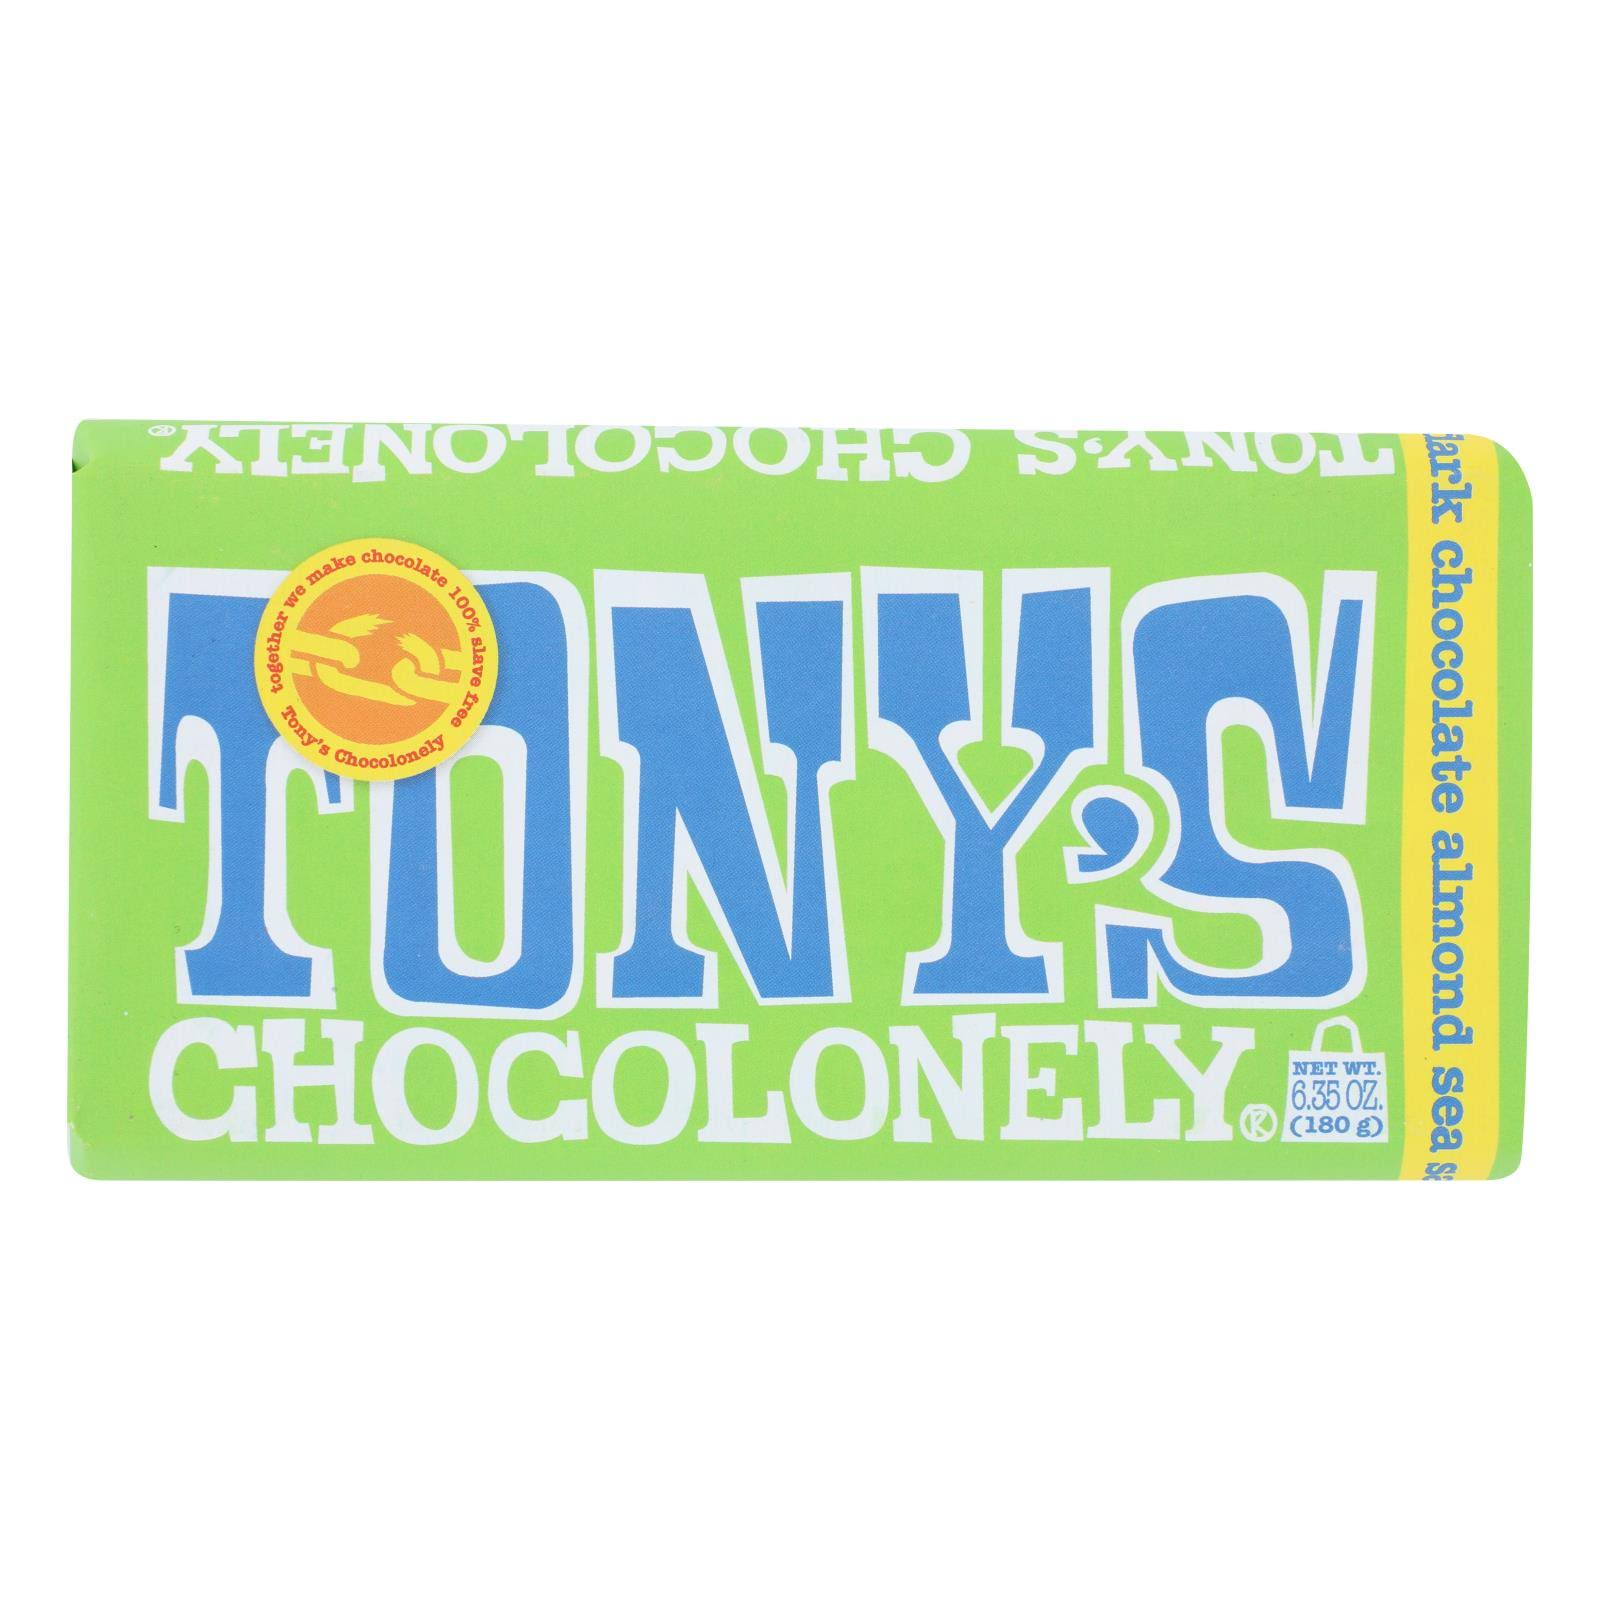 Tonys Chocolonely Dark Chocolate, Almond Sea Salt, 51% Cocoa - 6.35 oz